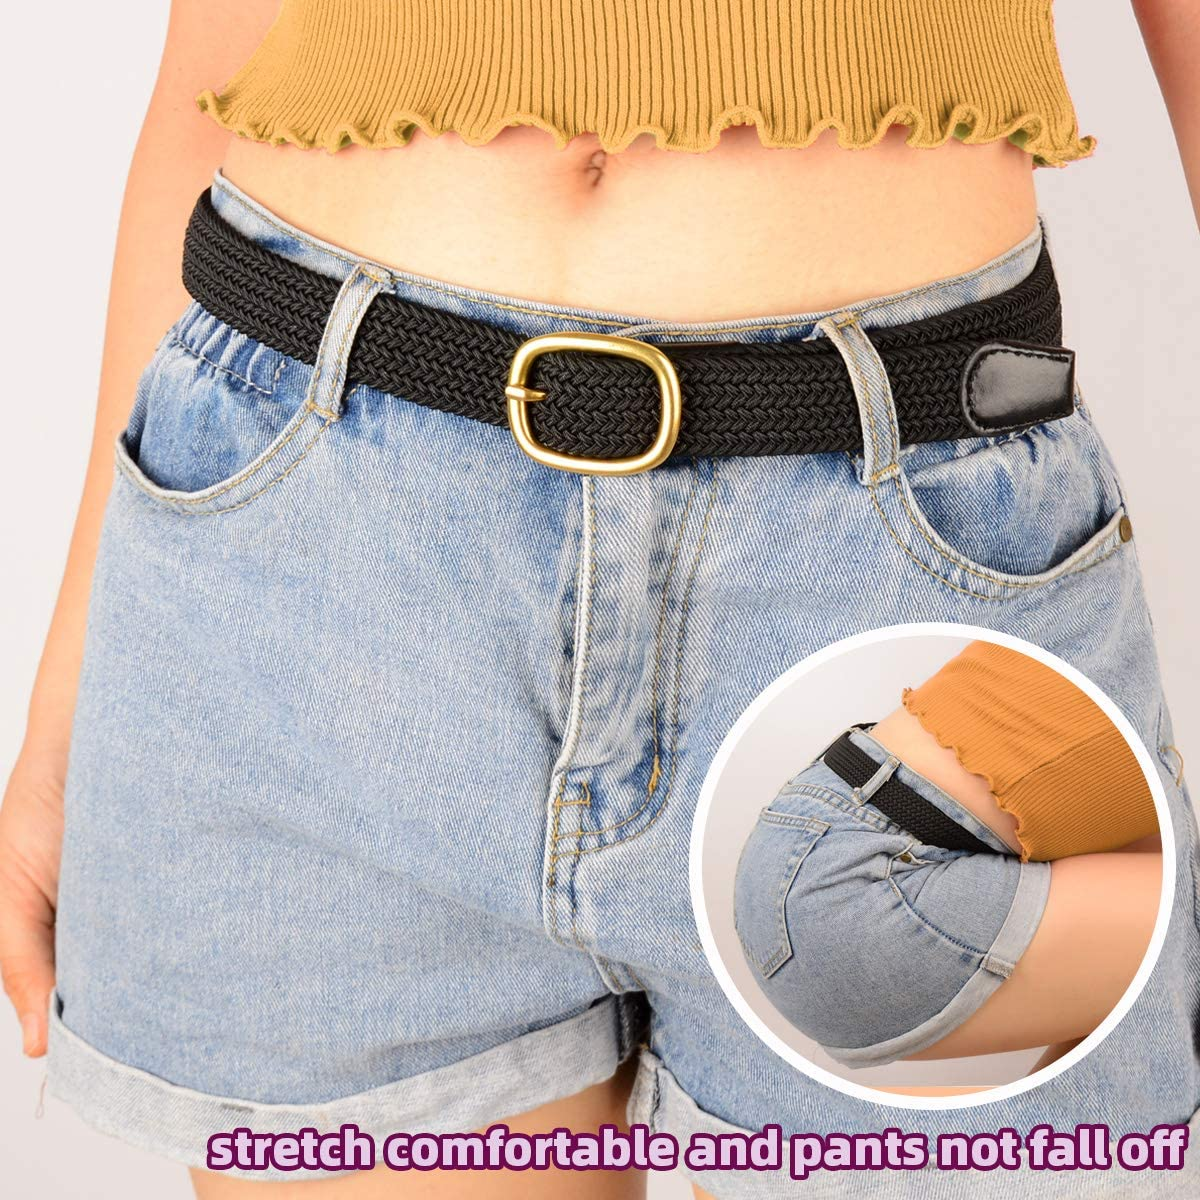 Drizzte Plus Size Belt 39 to 75inch Womens Woven Elastic Stretch Belts for Women Black